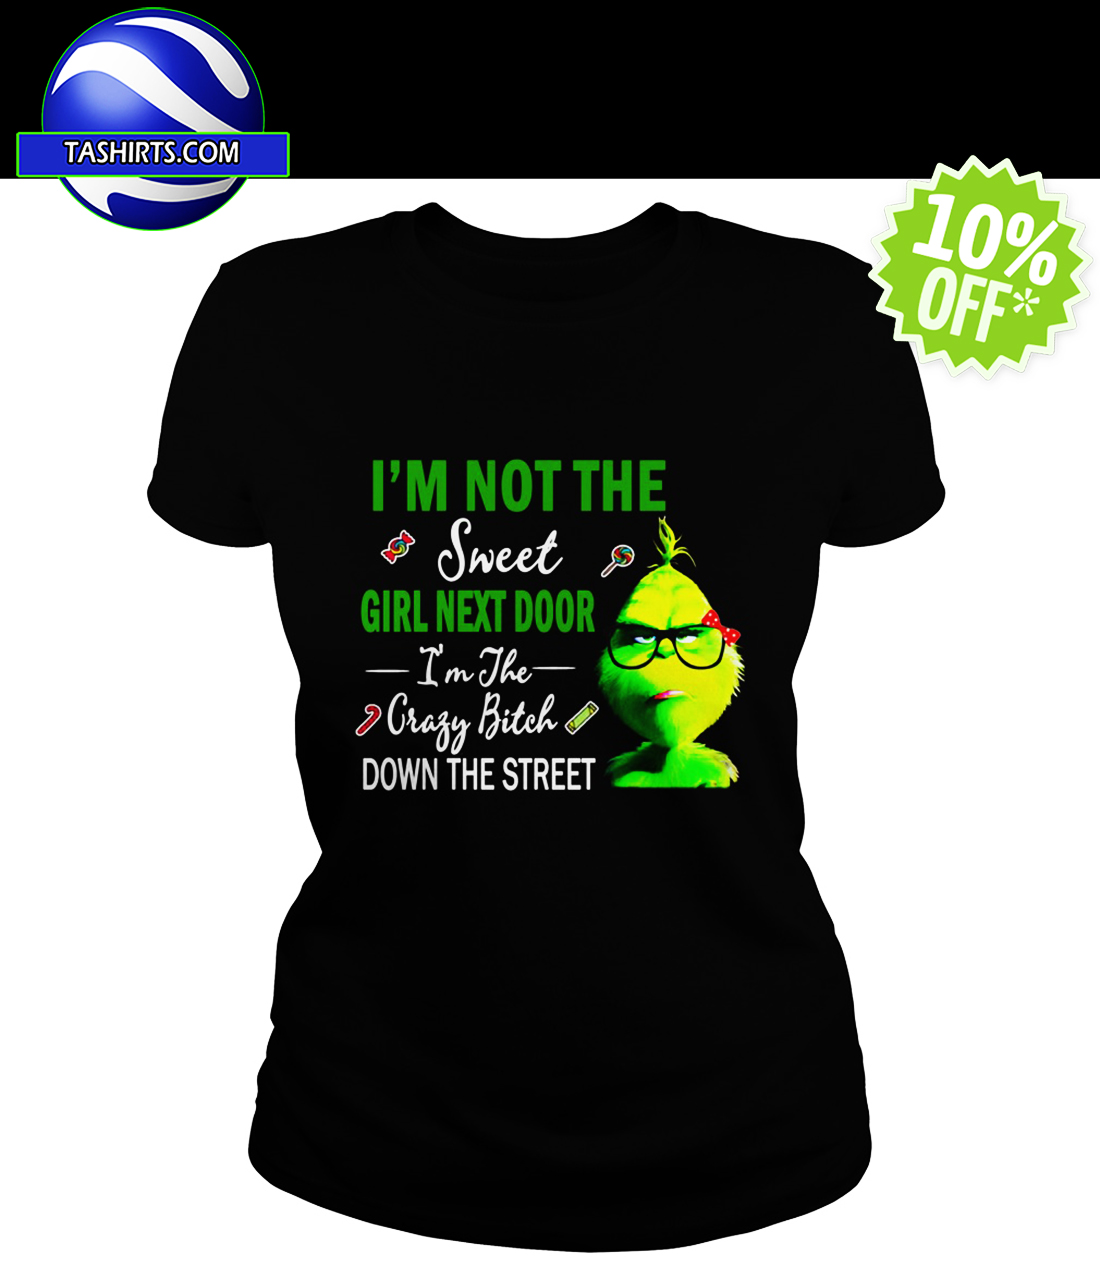 b86a4fb0 10K SOLD) Grinch I'm Not The Sweet Girl Next Door shirt, hoodie ...